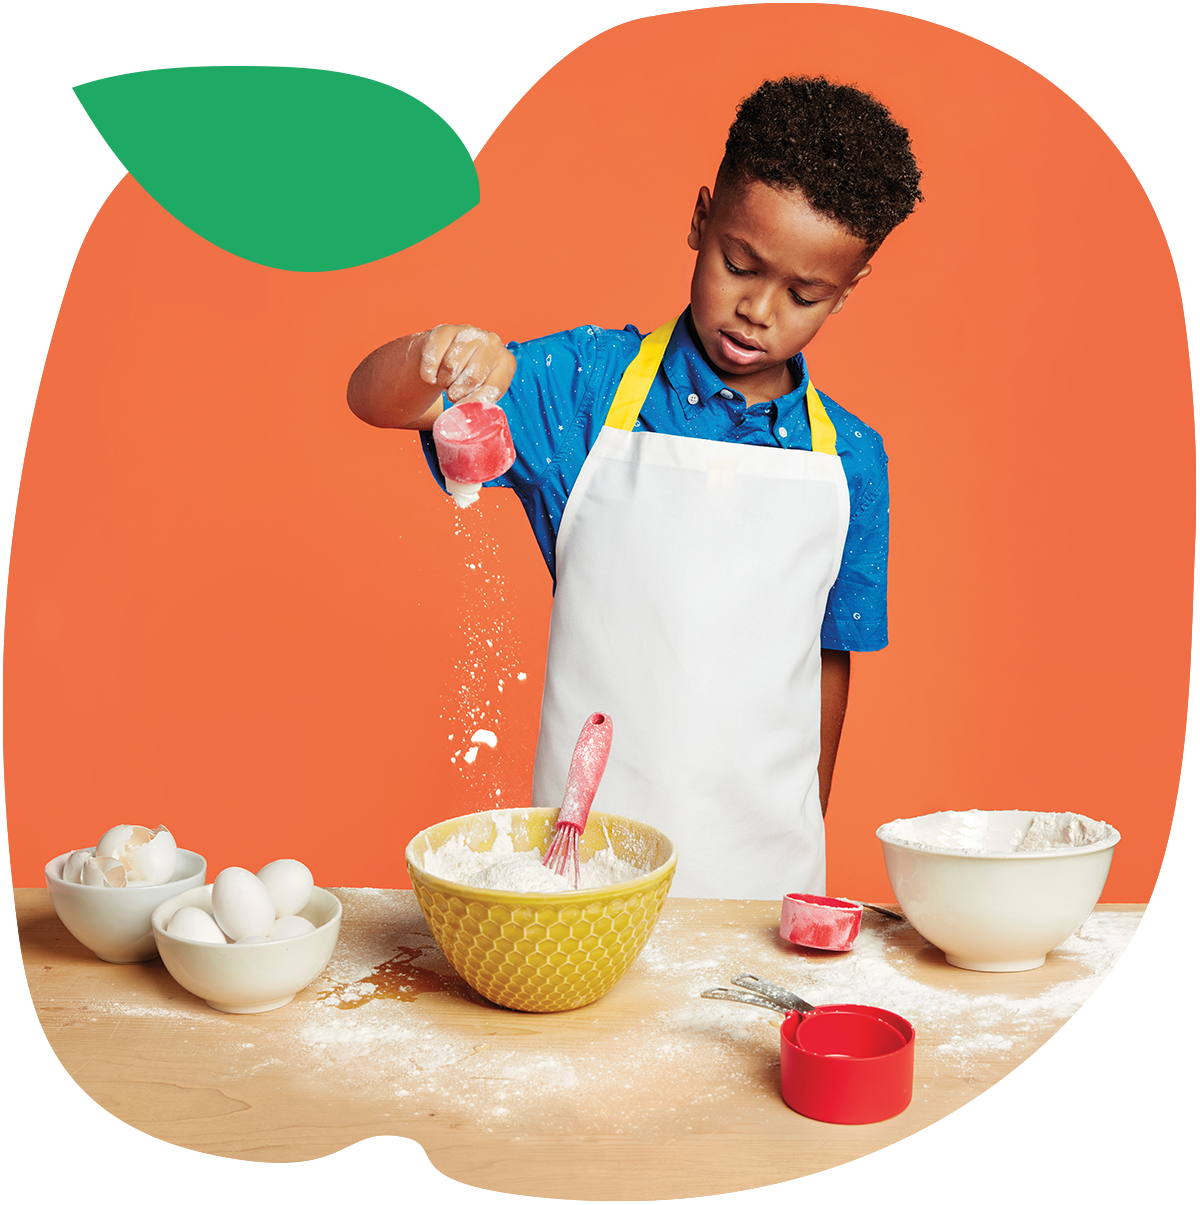 A young boy baking, misting flour and eggs on a counter in mixing bowls and measuring cups in the background of an animated image of an apple